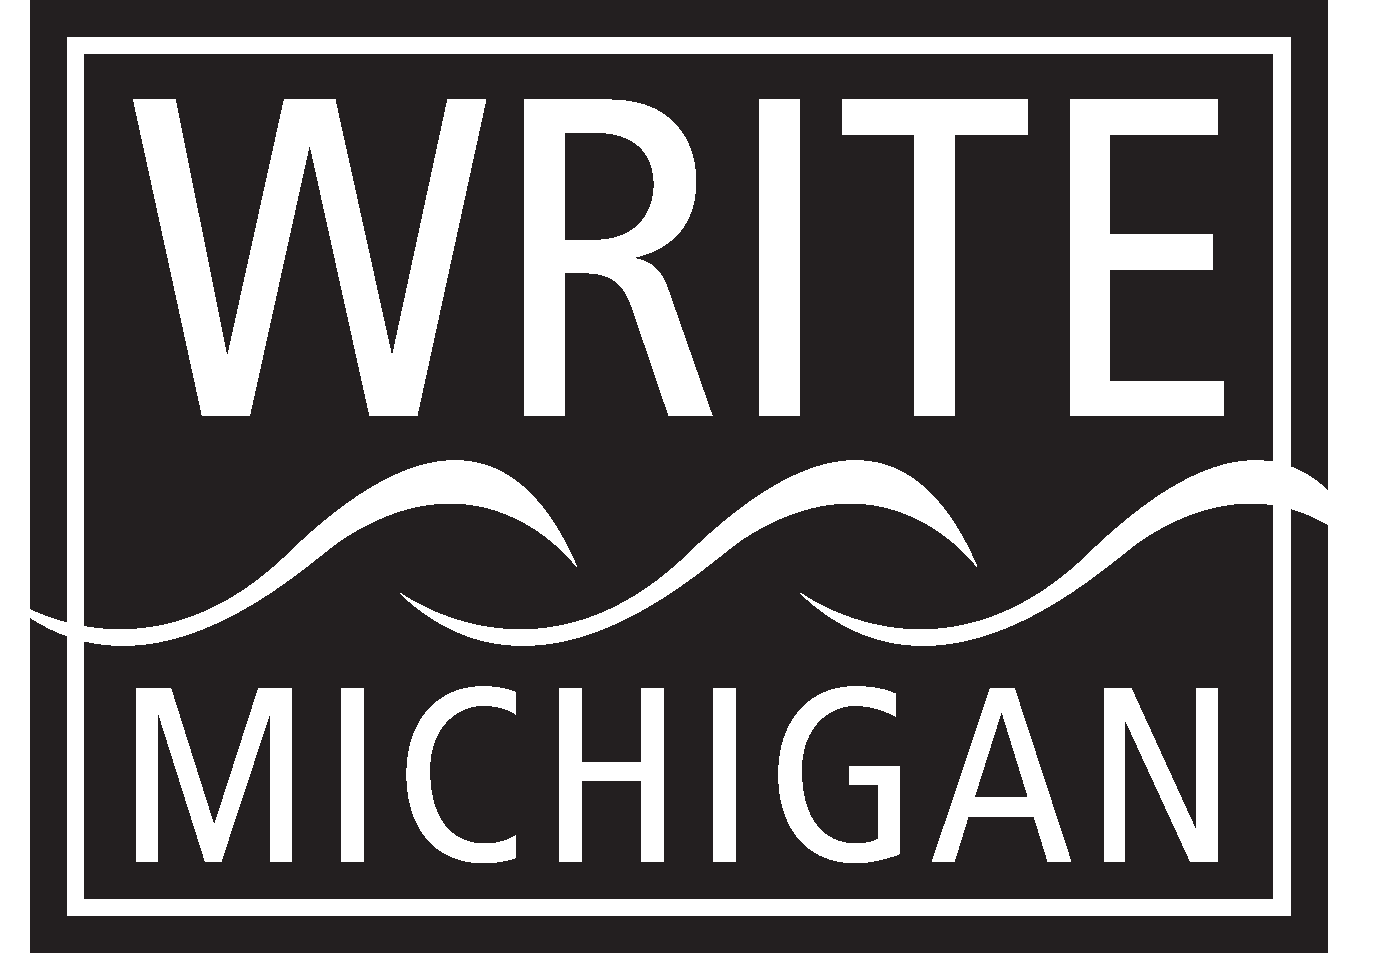 Write Michigan